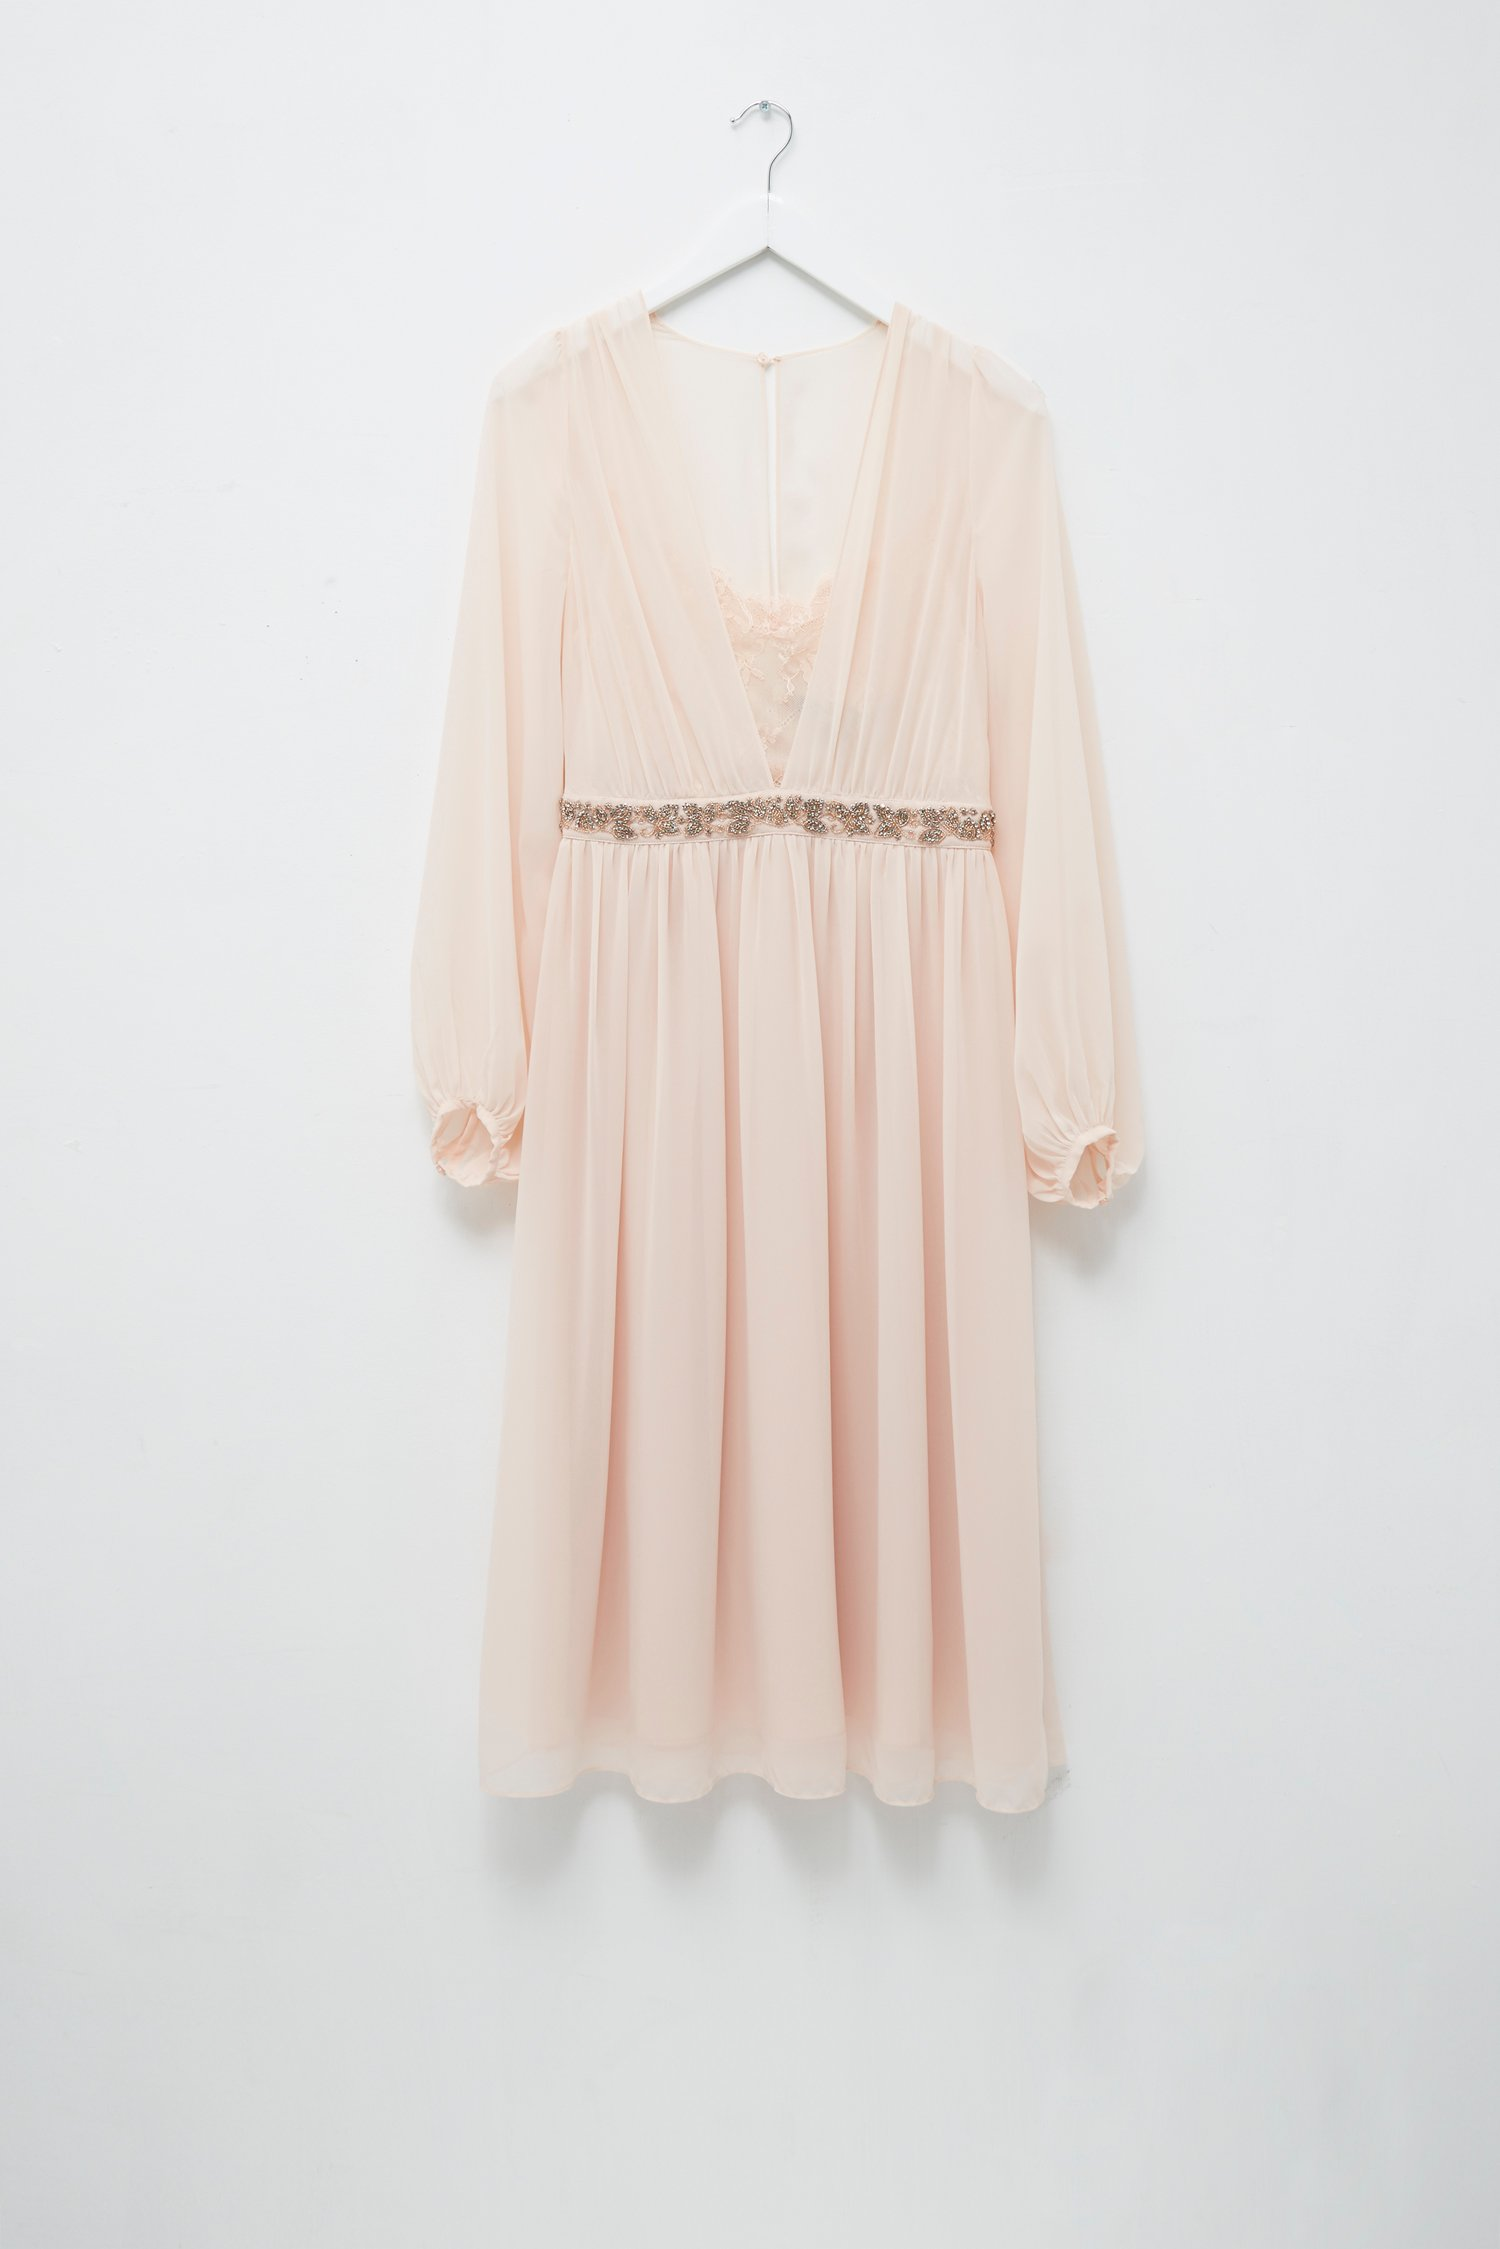 Alana Drape Dress Last Chance French Connection